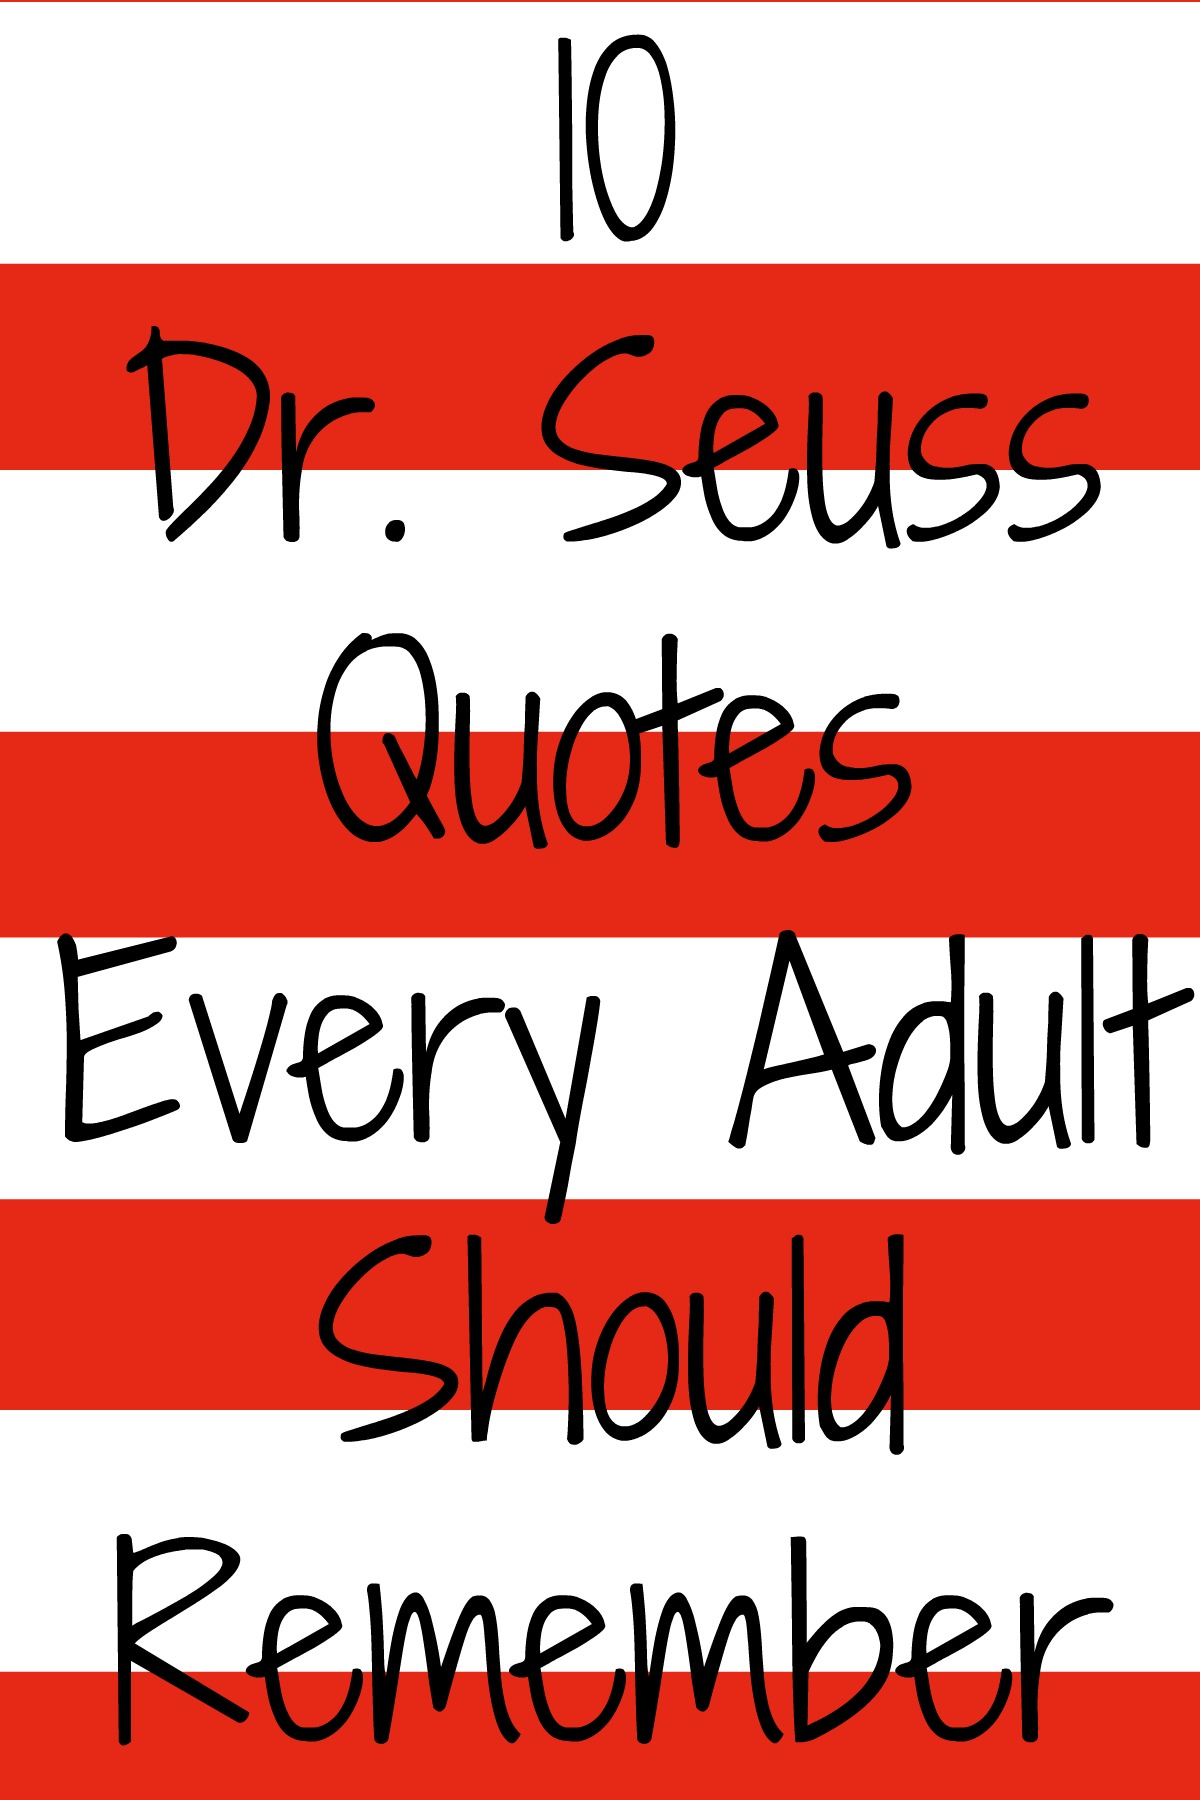 10 Dr Seuss Quotes Every Adult Should Remember